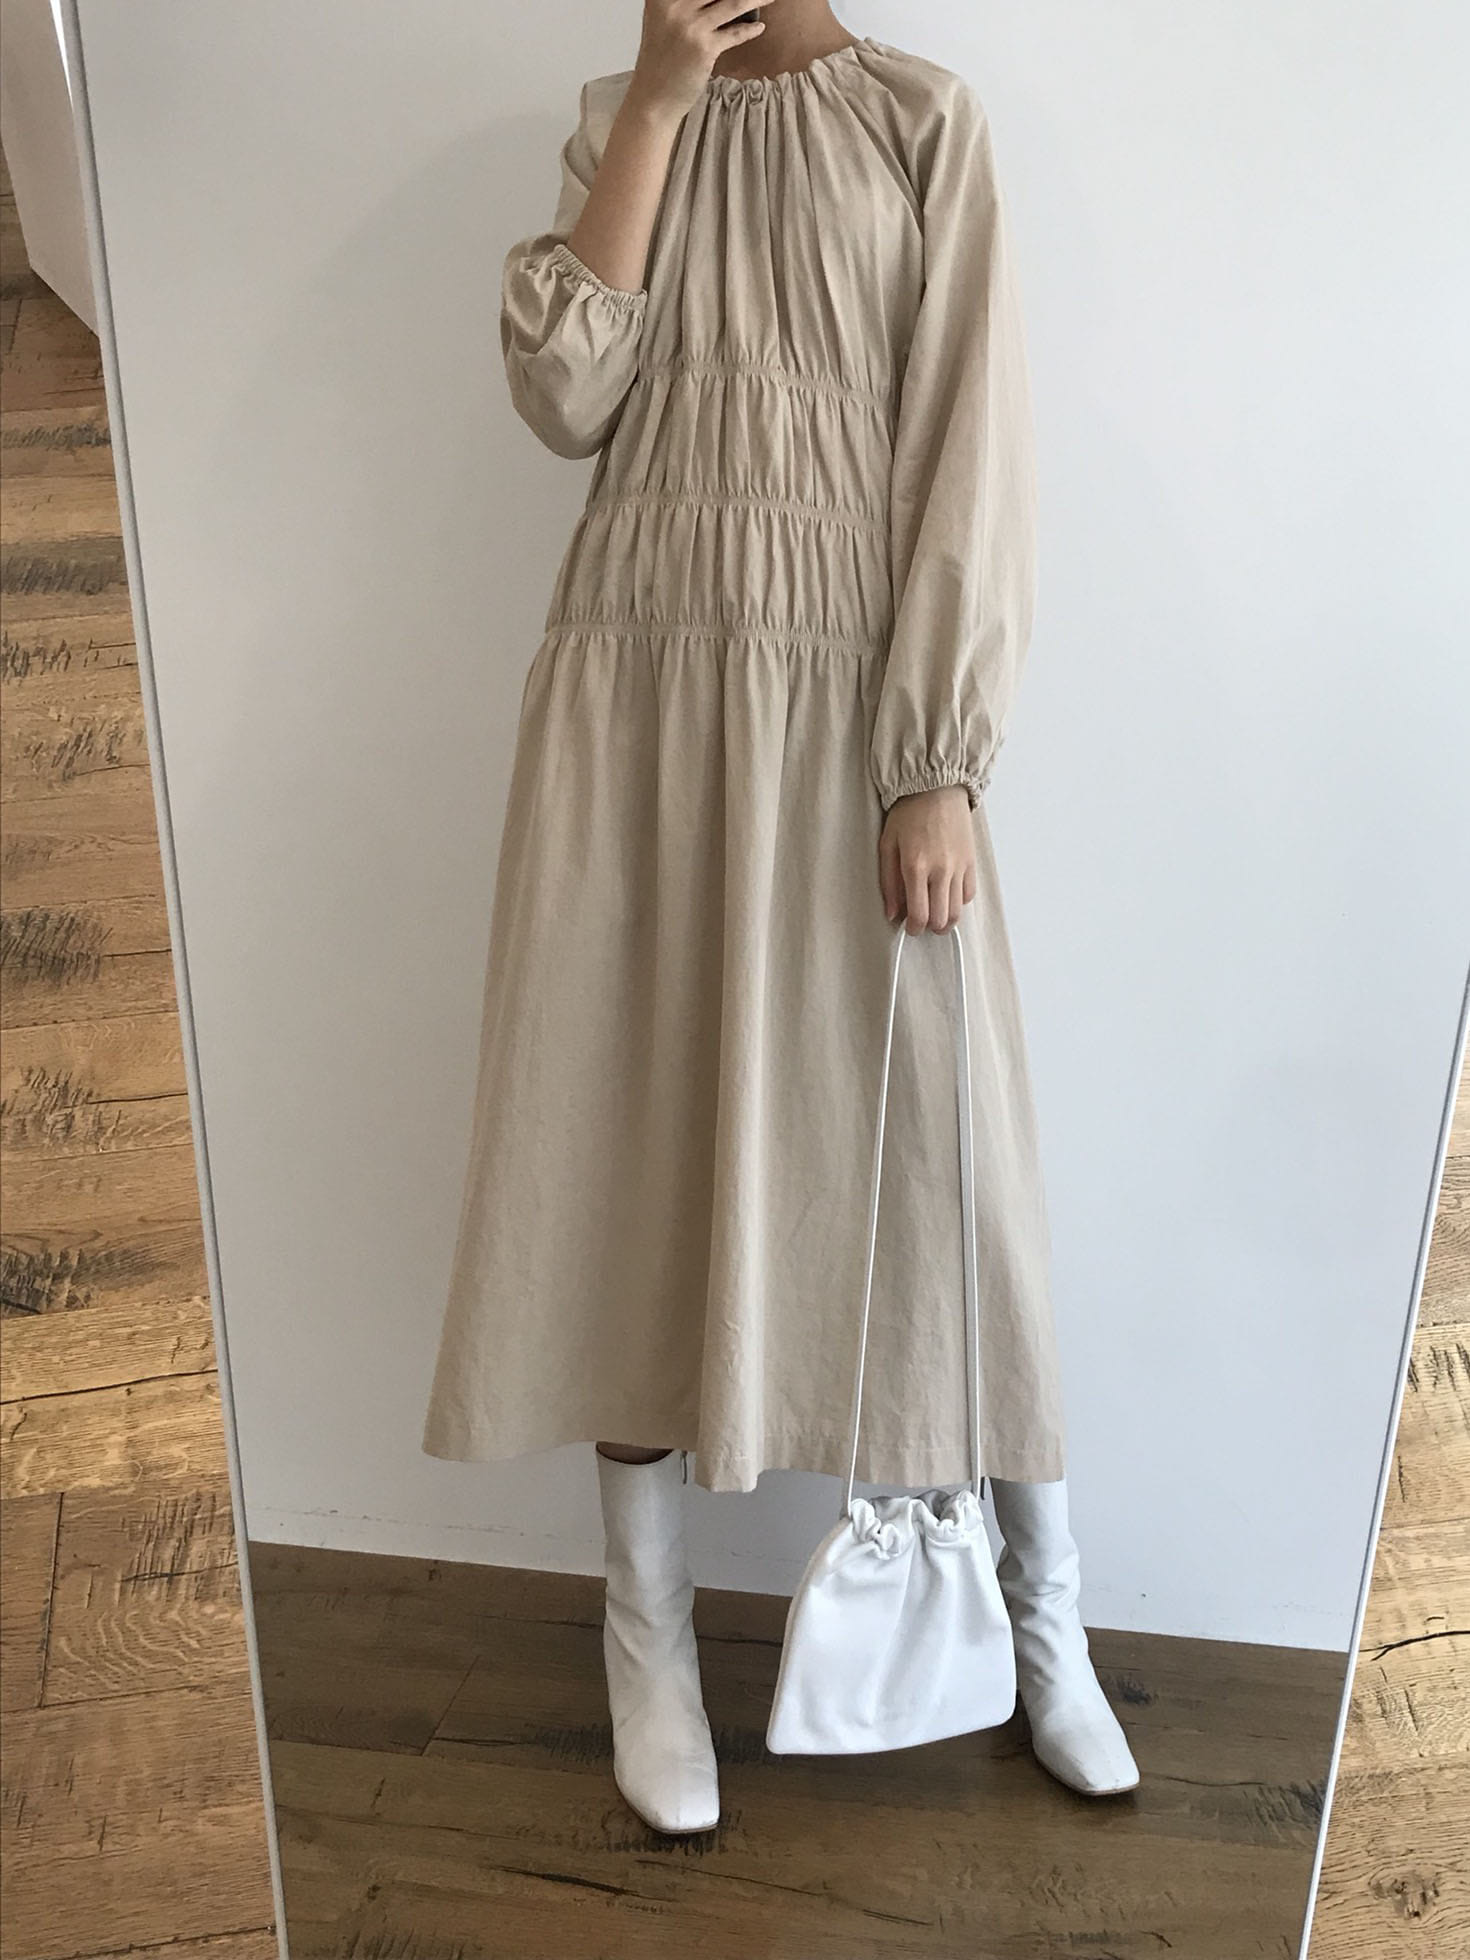 vive dress - beige